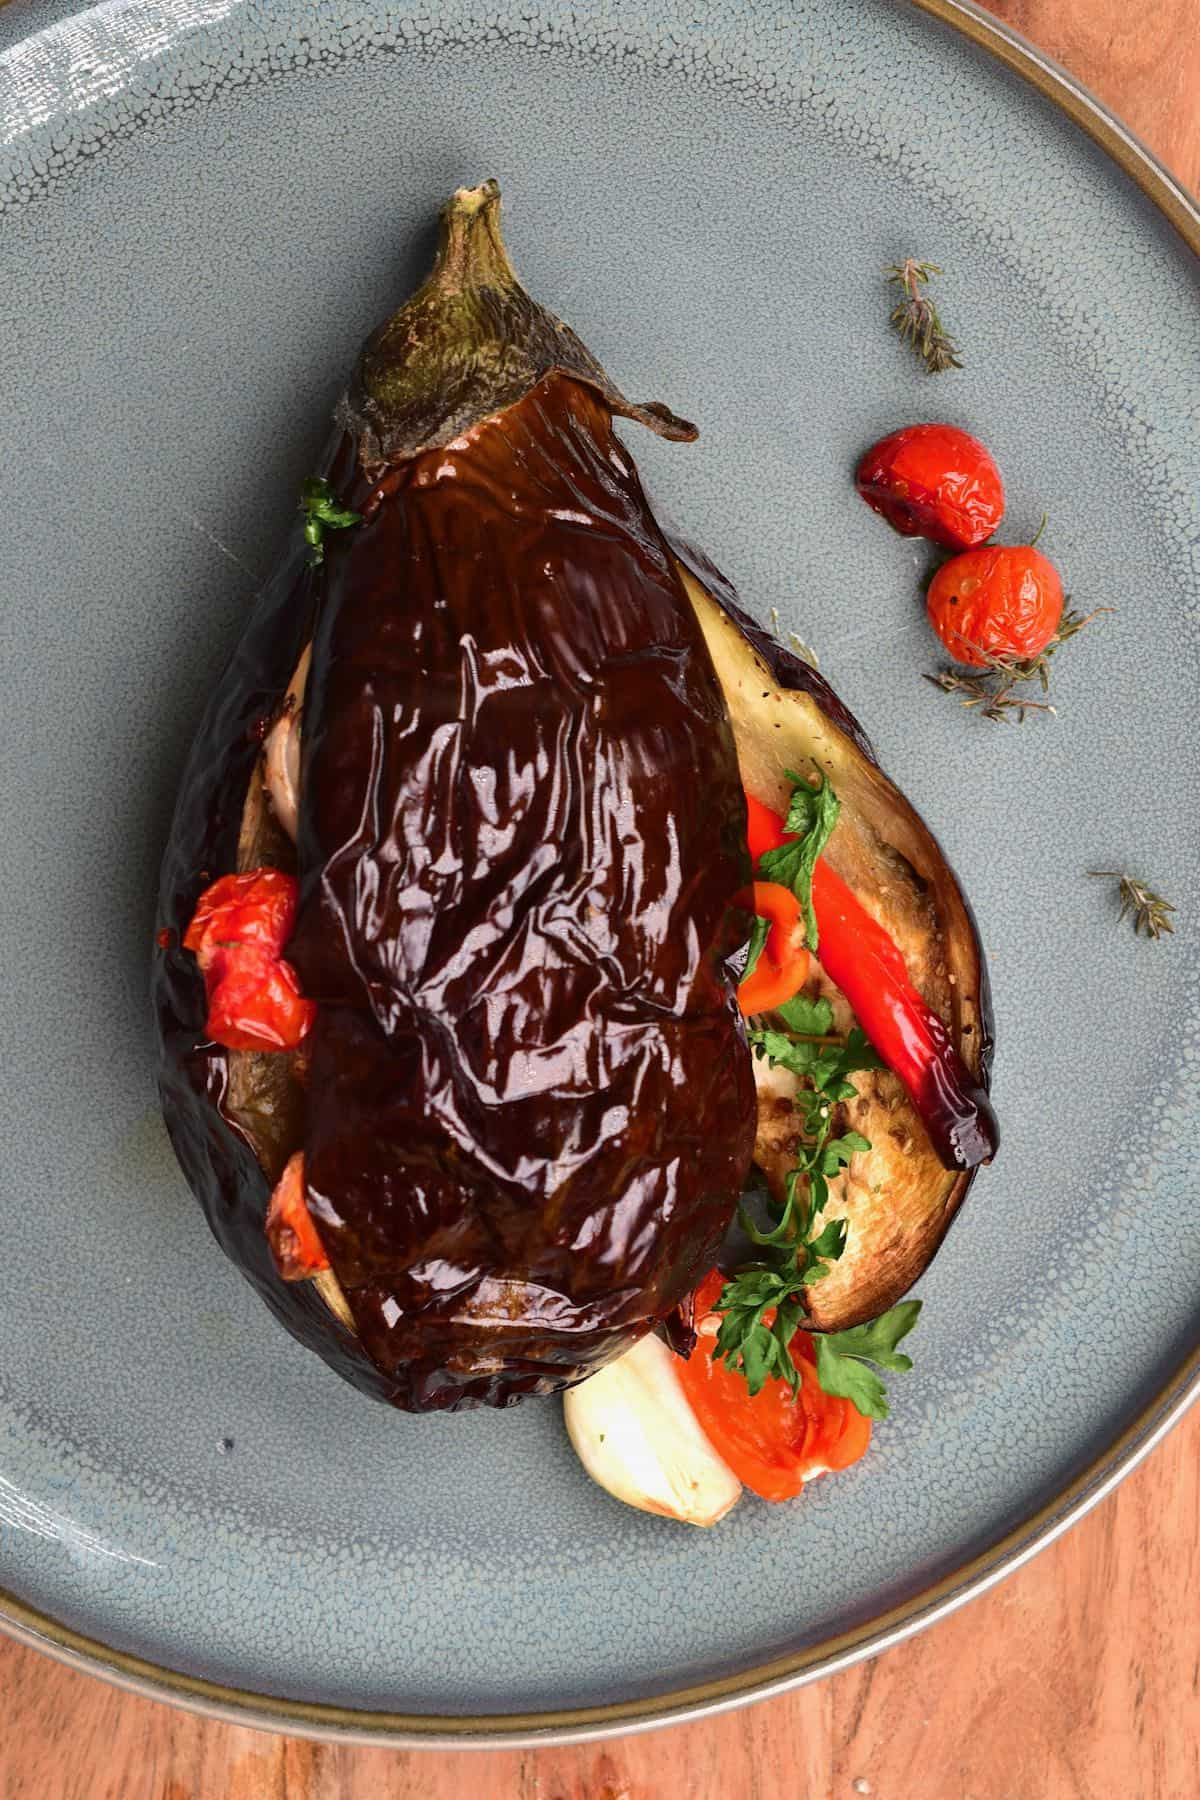 Baked eggplant stuffed with tomatoes and garlic